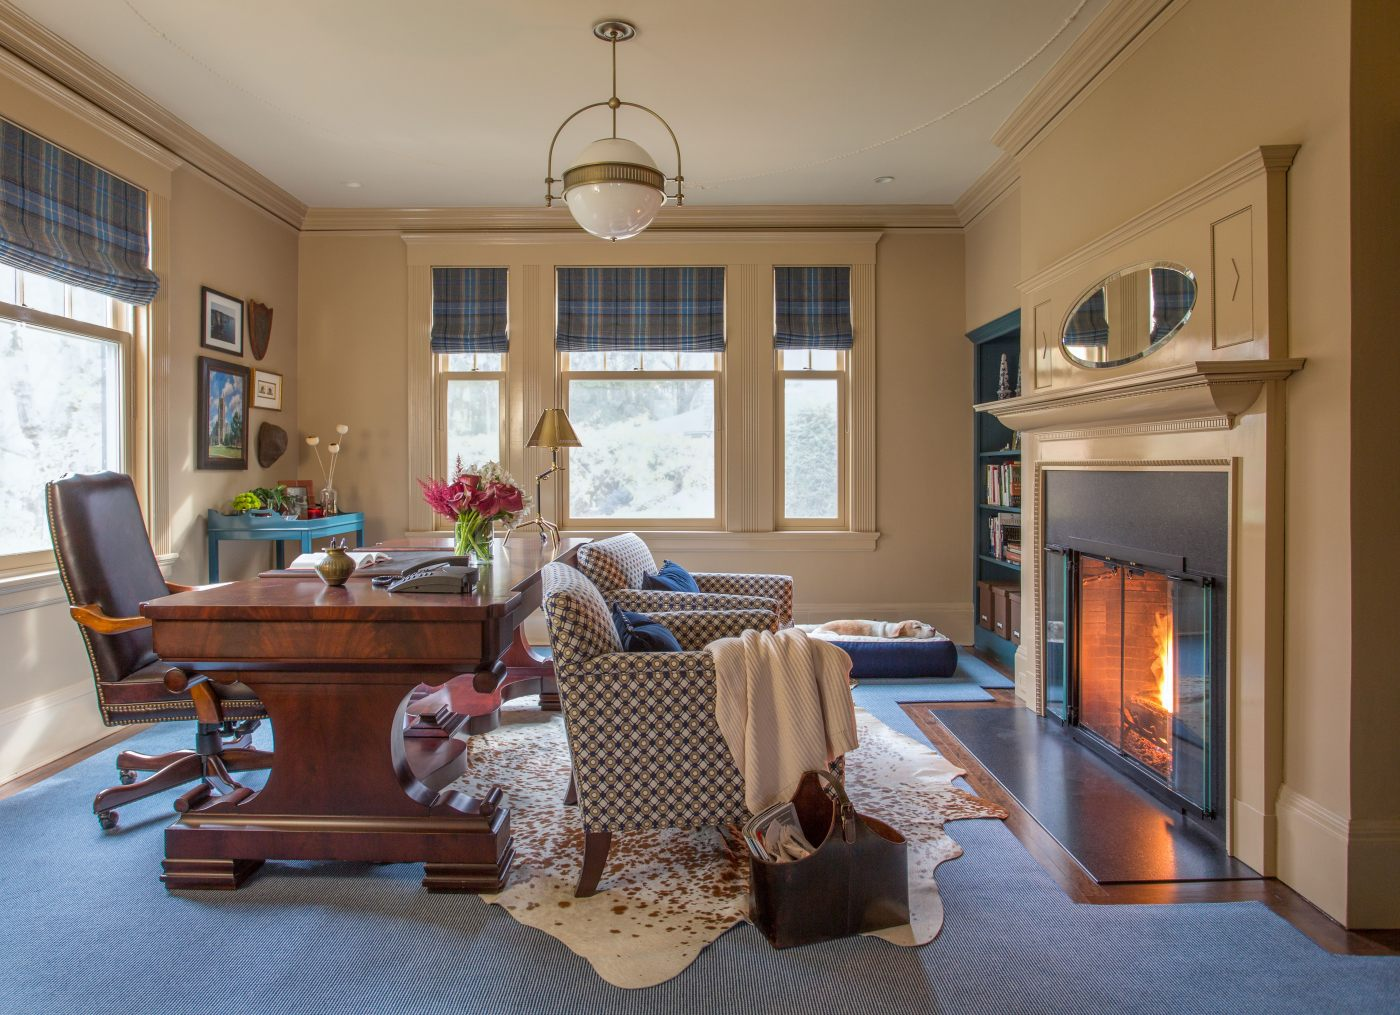 One Room Challenge Fall 2015 Manbrary Reveal | Kelly Rogers Interiors | Interiors for Families